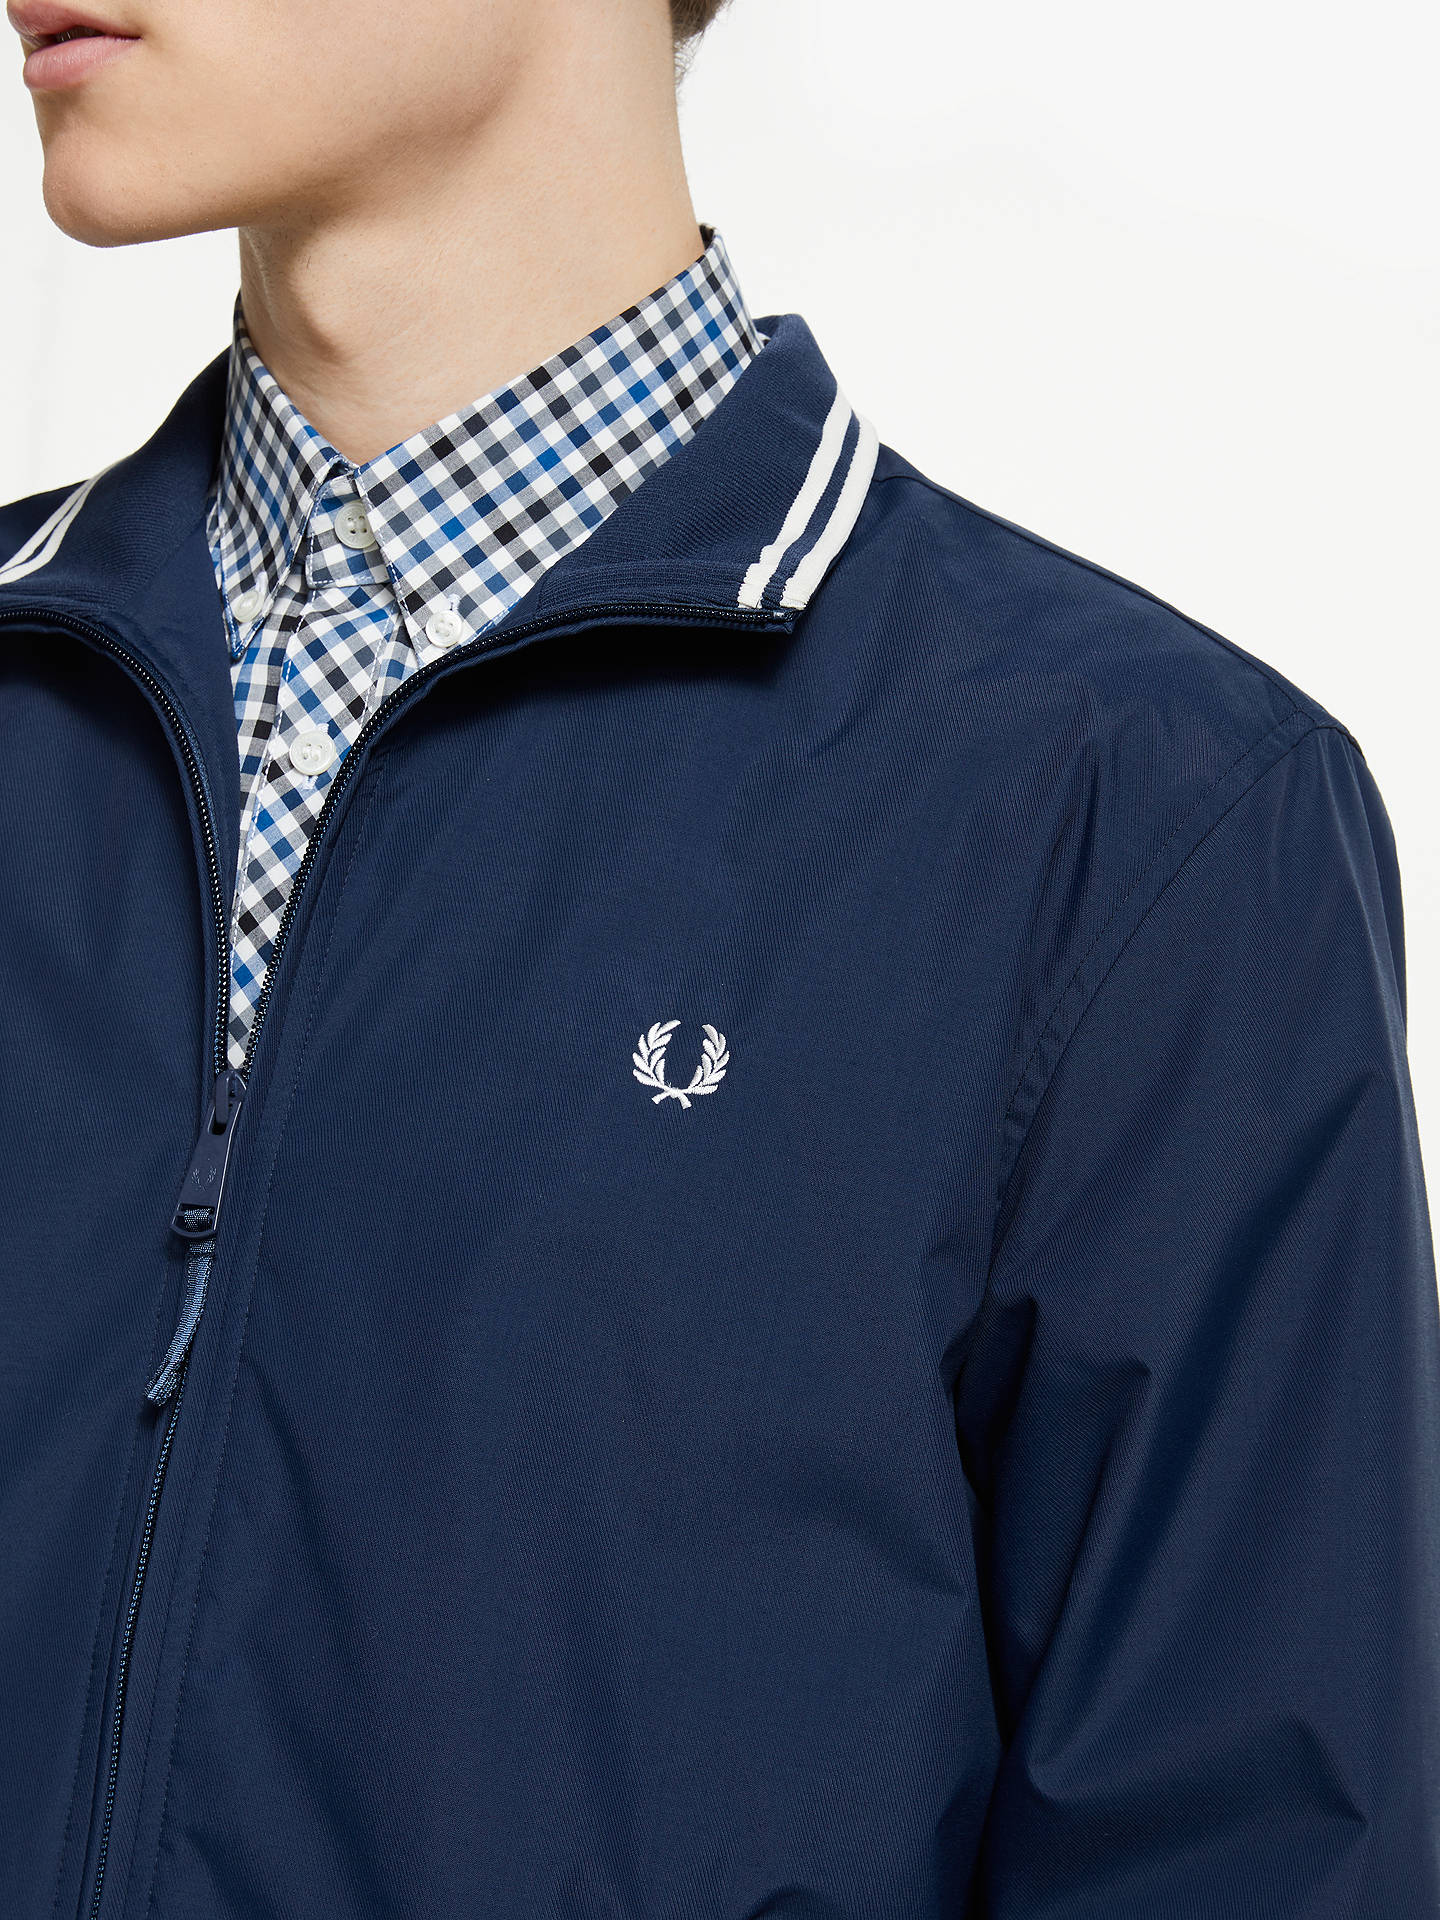 Buy Fred Perry Brentham Jacket, Carbon Blue, L Online at johnlewis.com